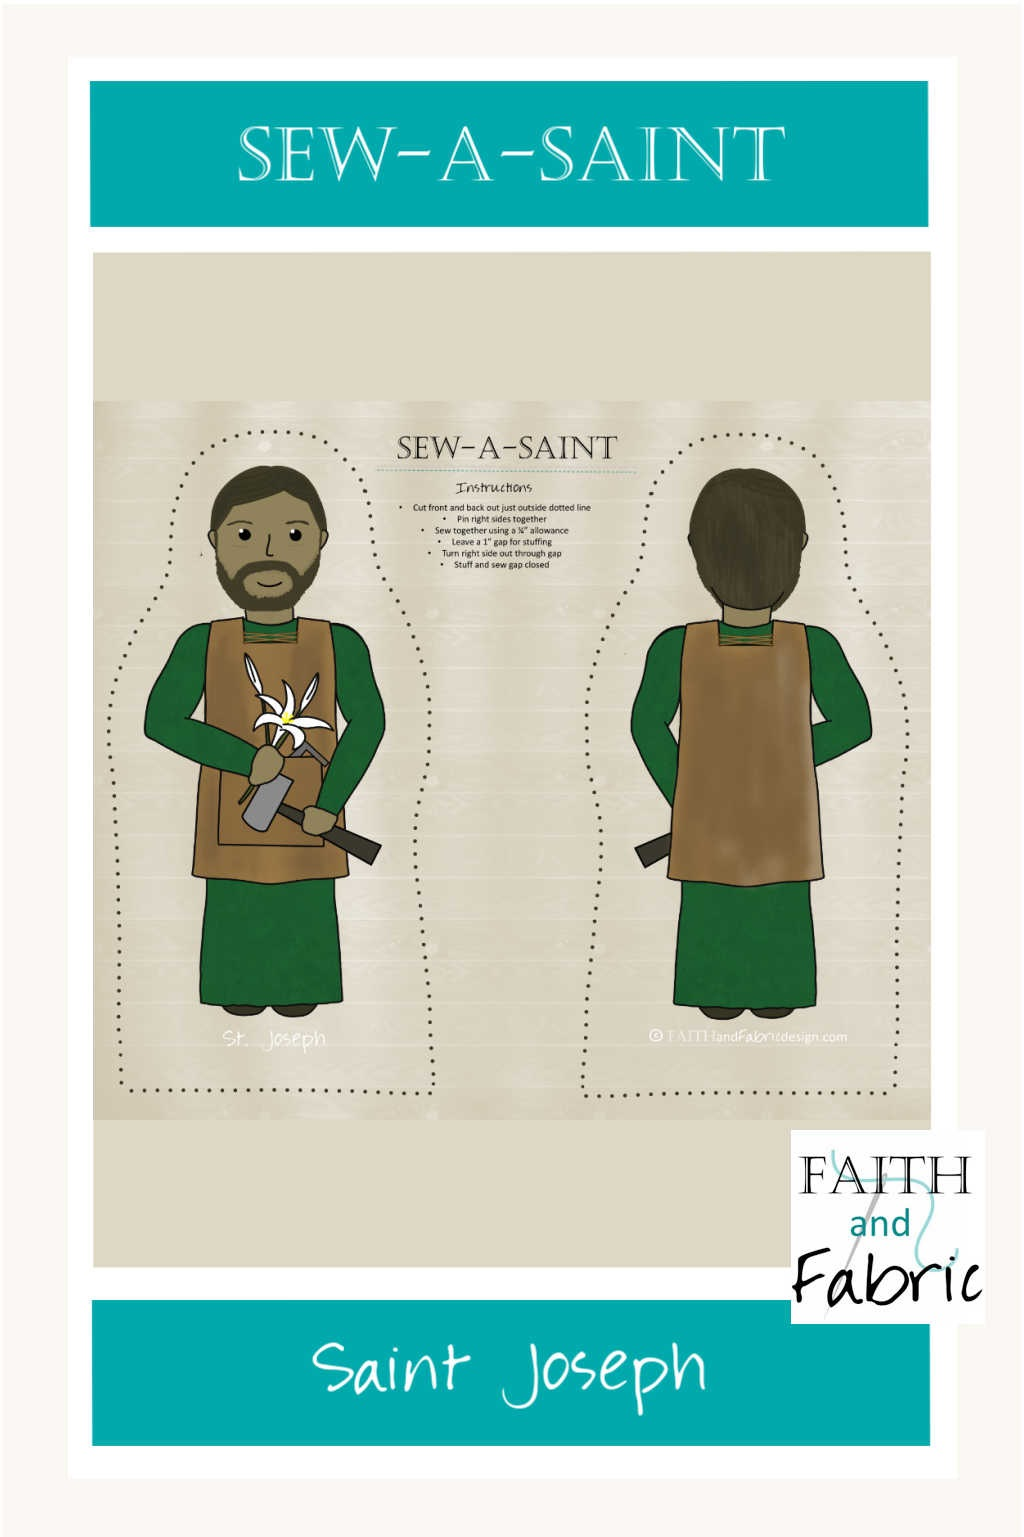 Sew your own Saint Joseph Sew-a-Saint doll with this adorable all cotton fabric panel!